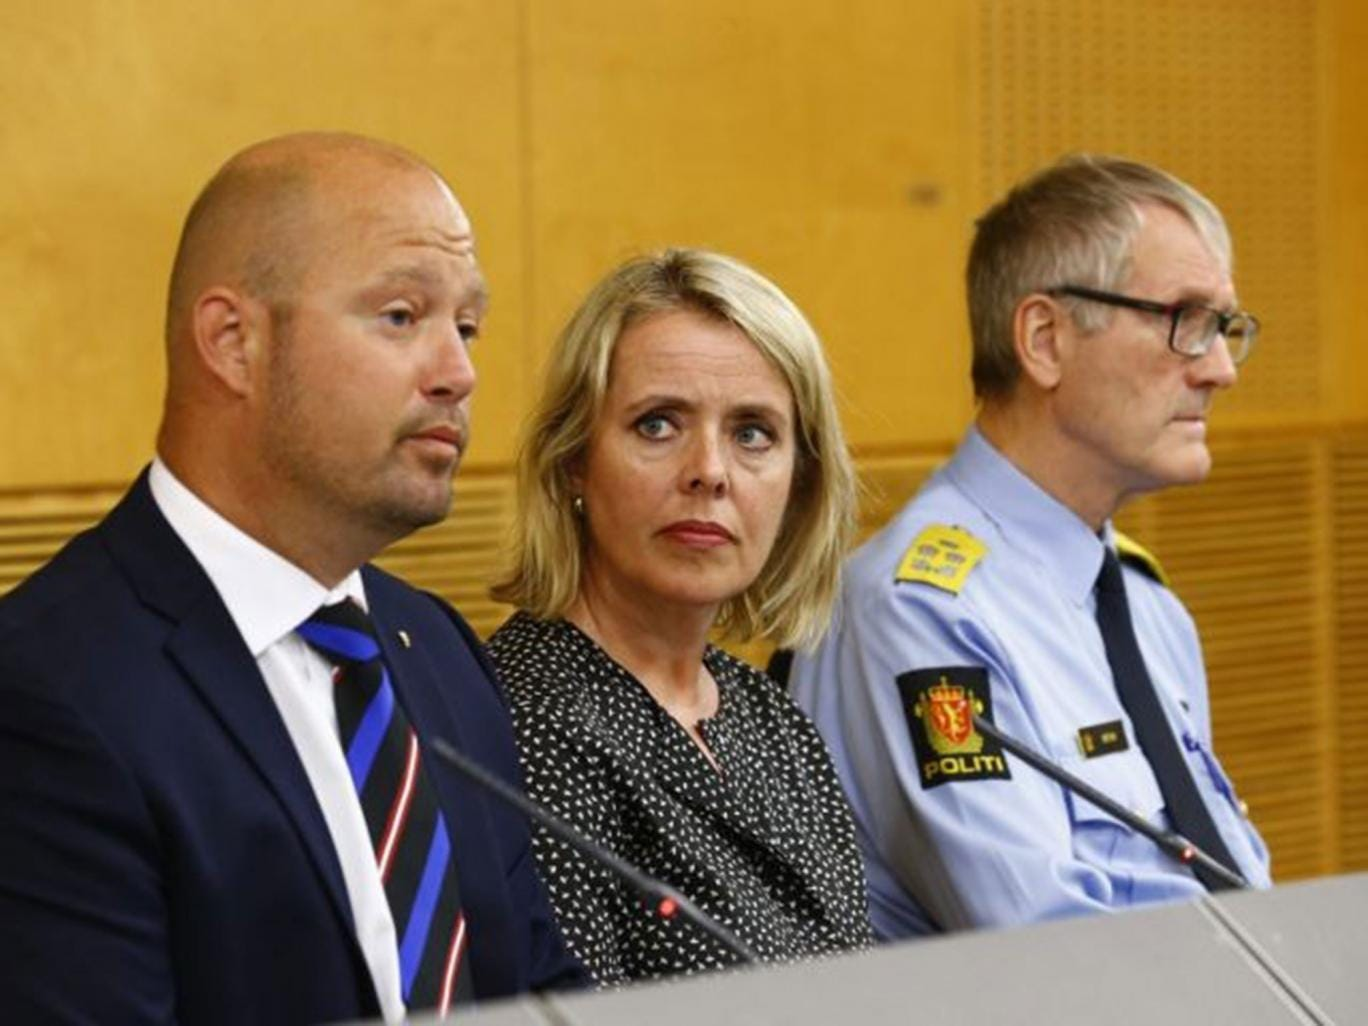 Minister of Justice and Public Security, Anders Anundsen, left, the head of the Norwegian intelligence service (PST), Benedicte Bjoernland and head of the police Vidar Refvik, right, during a press conference in Oslo on Thursday, 24 July, 2014